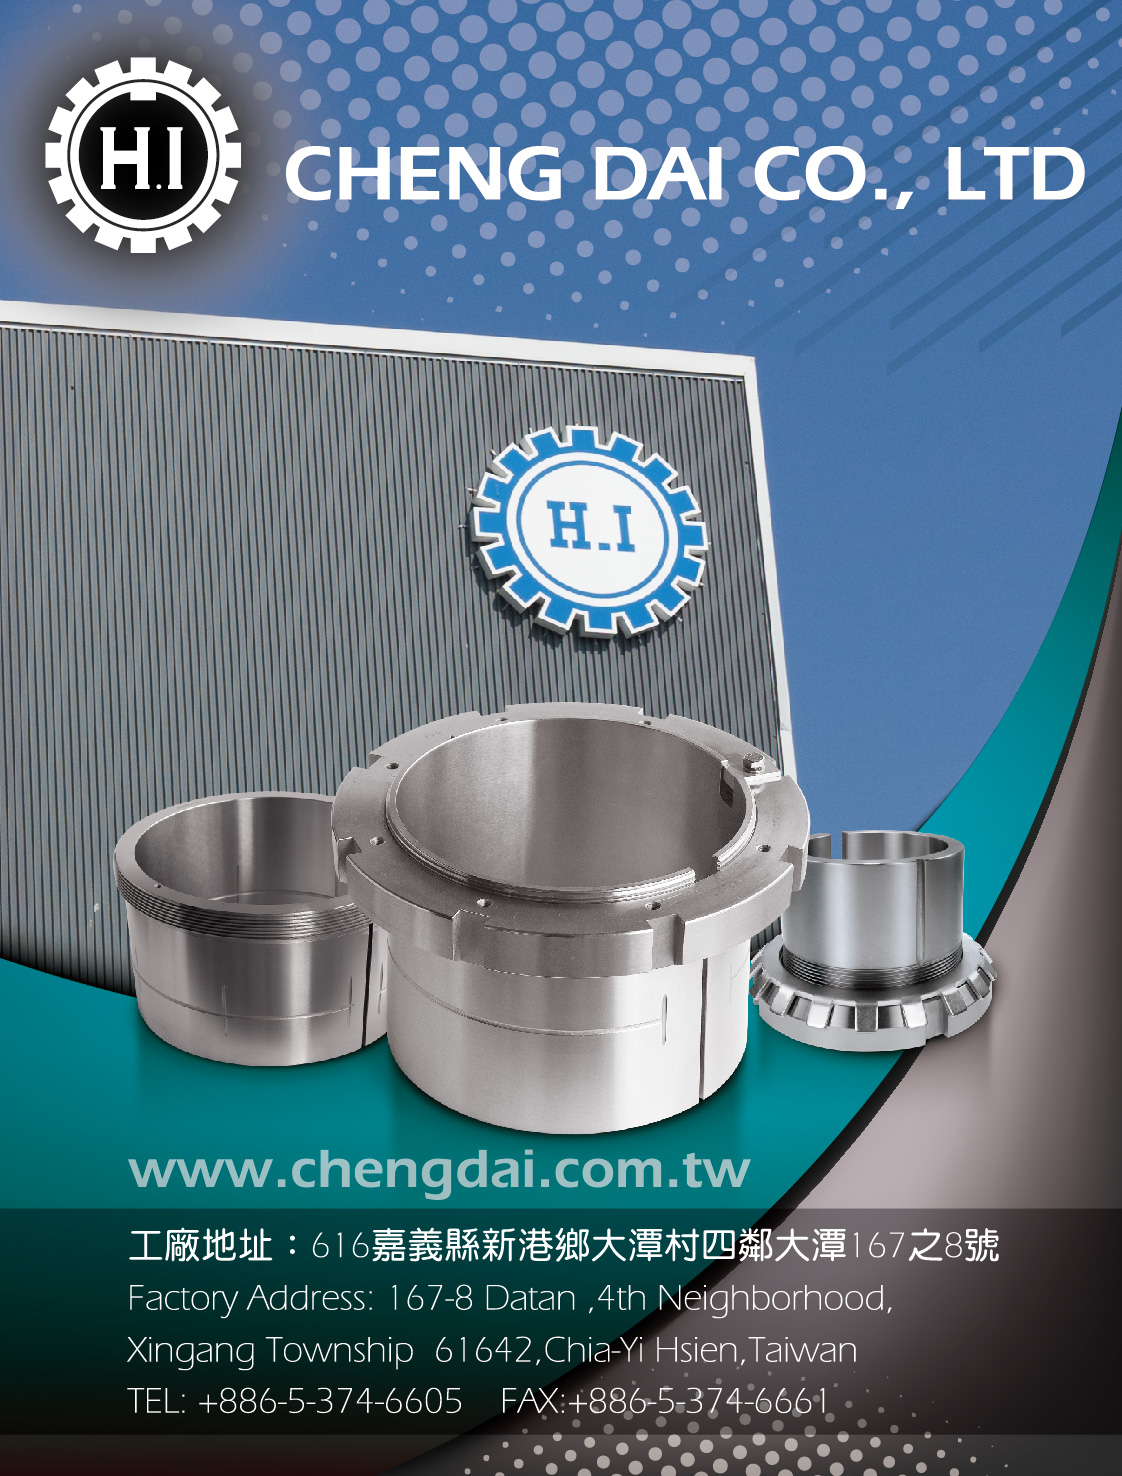 CHENG DAI CO., LTD.